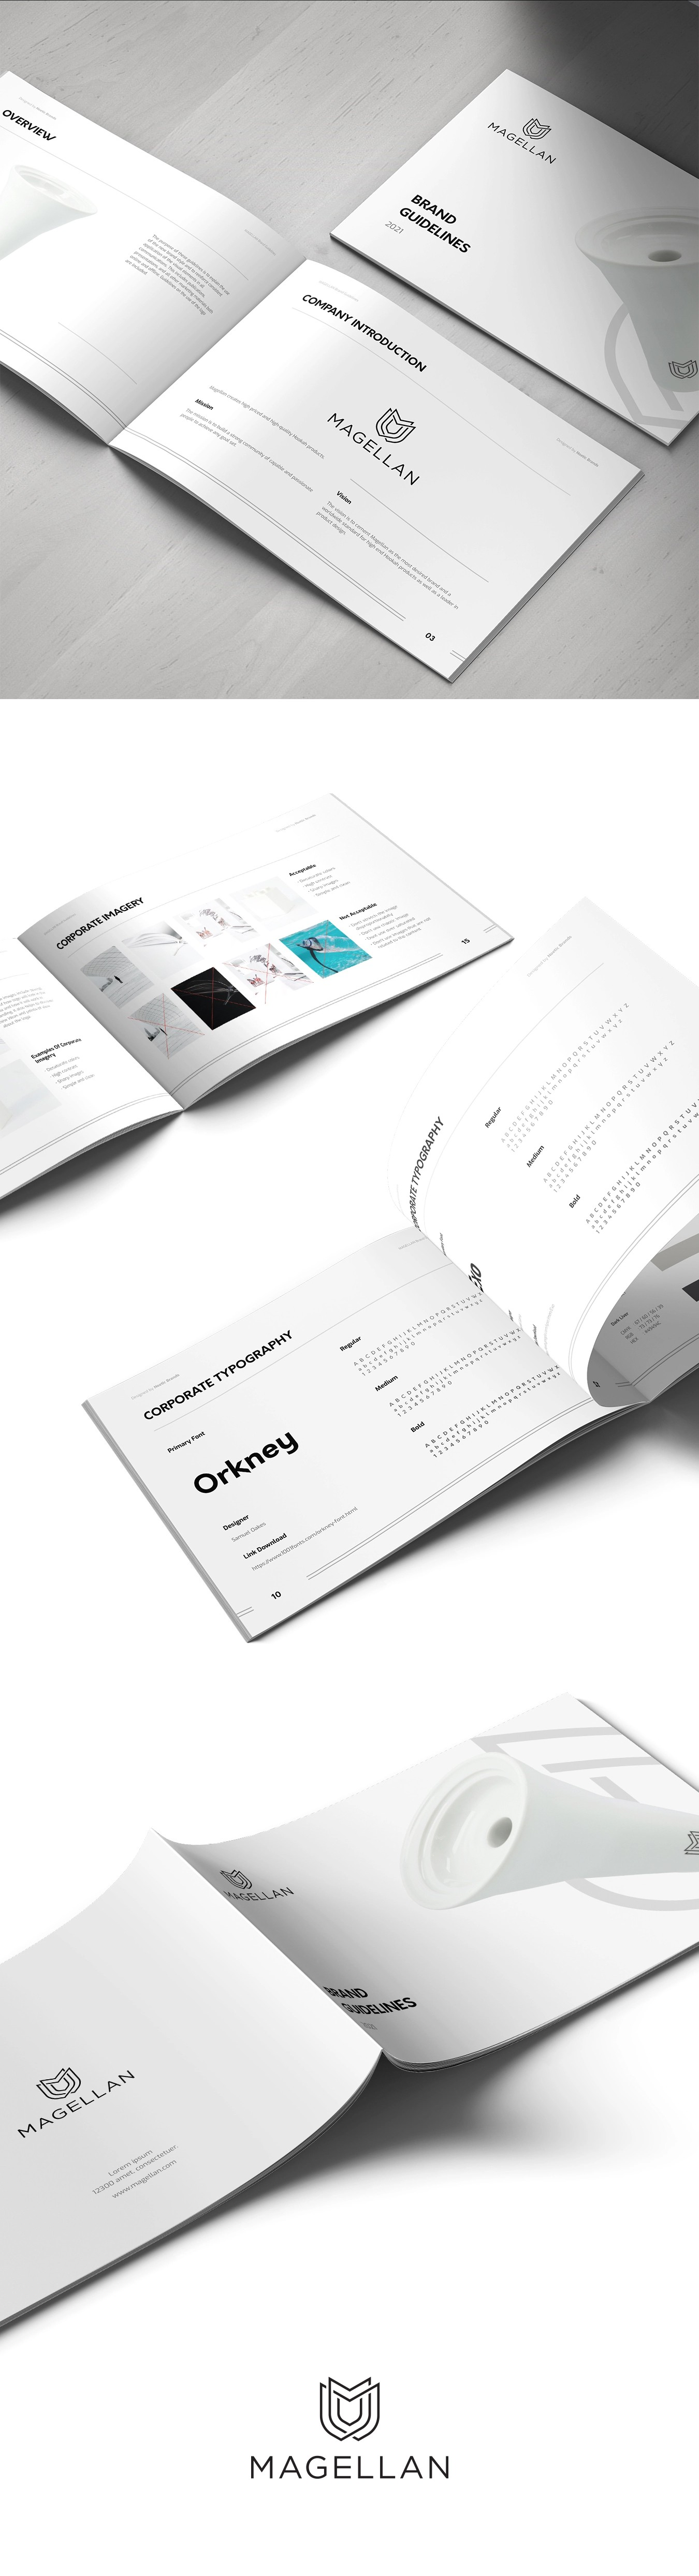 Brand guide and brand identity pack